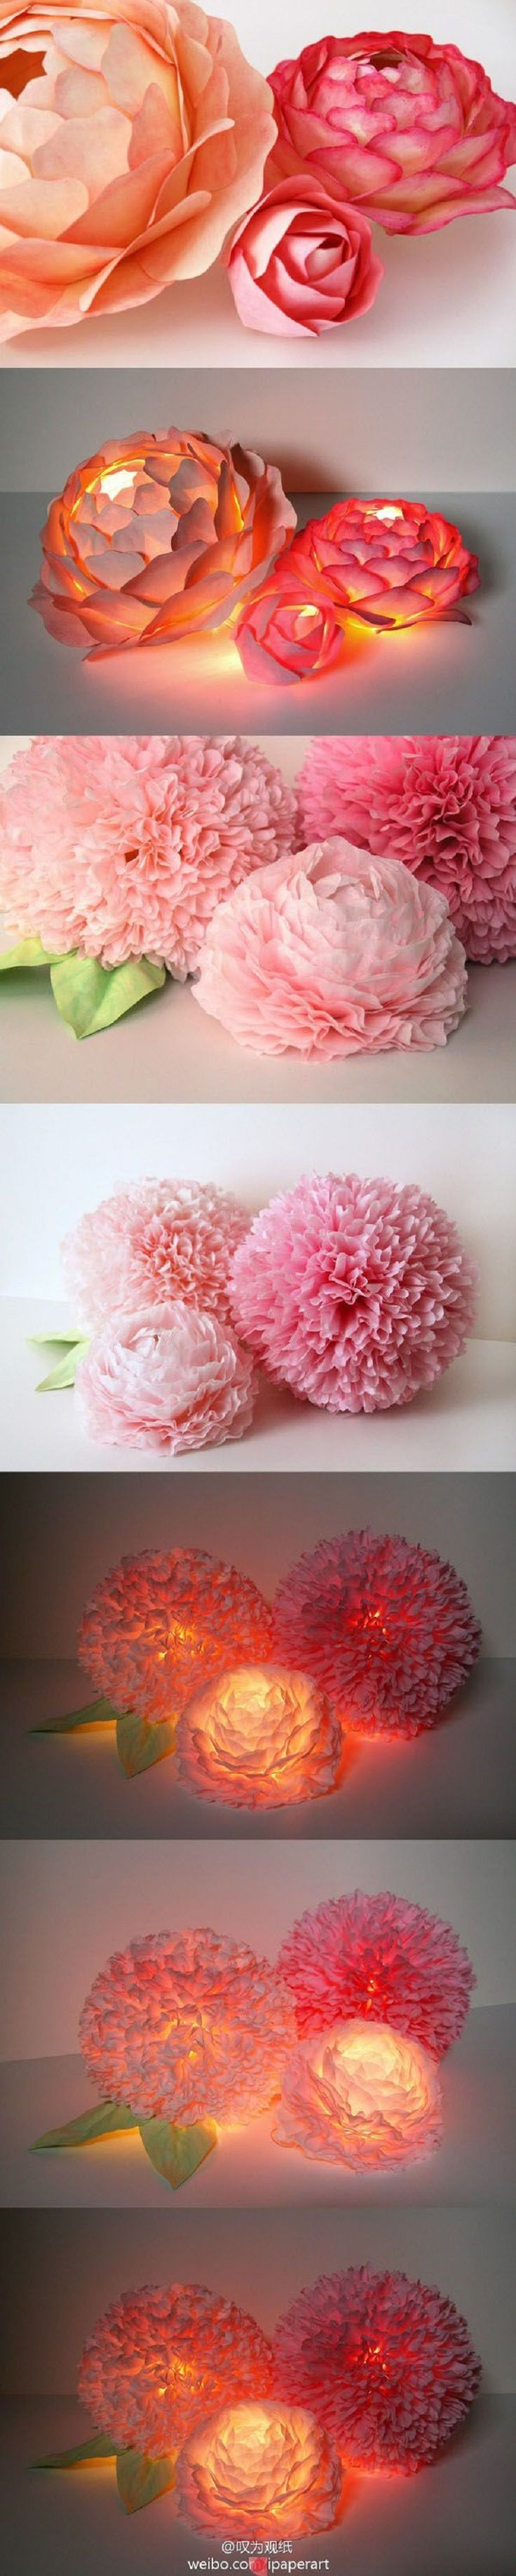 Paper Flower Centerpiece with LED Lighting - 17 Blossoming DIY Spring Decorating Tutorials | GleamItUp